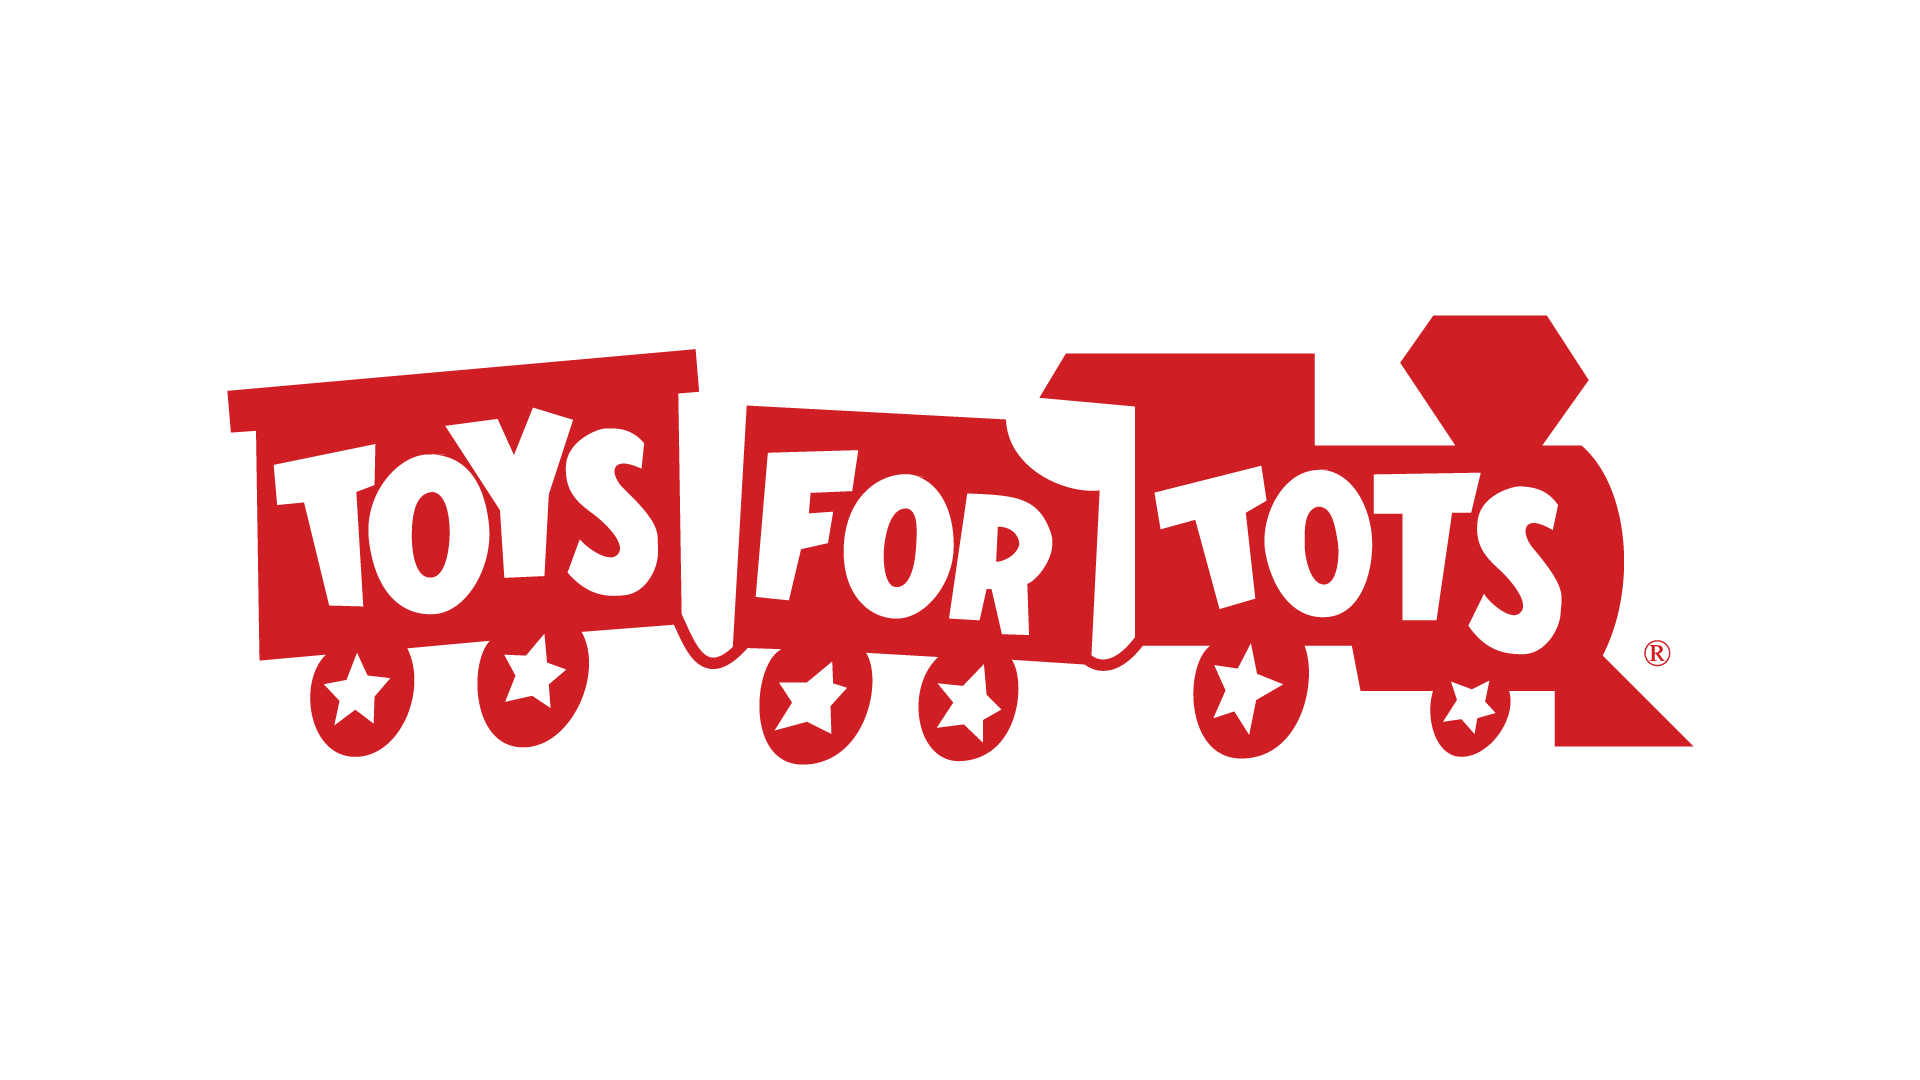 Toyrs For Tots : Toys for tots